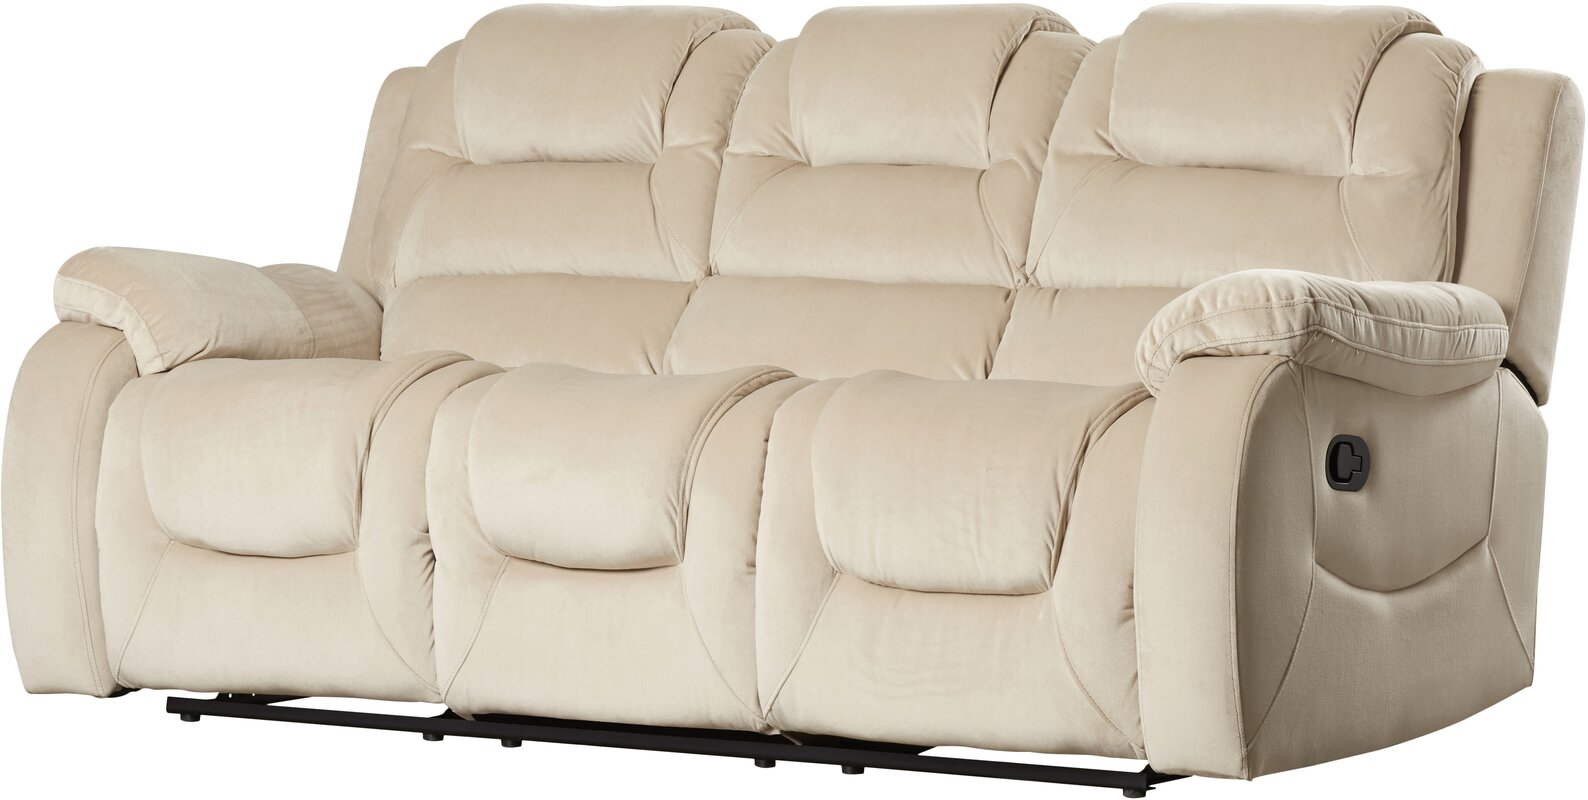 luxe sofa of power dump reclining recliner the lawrence dual furniture picture inch